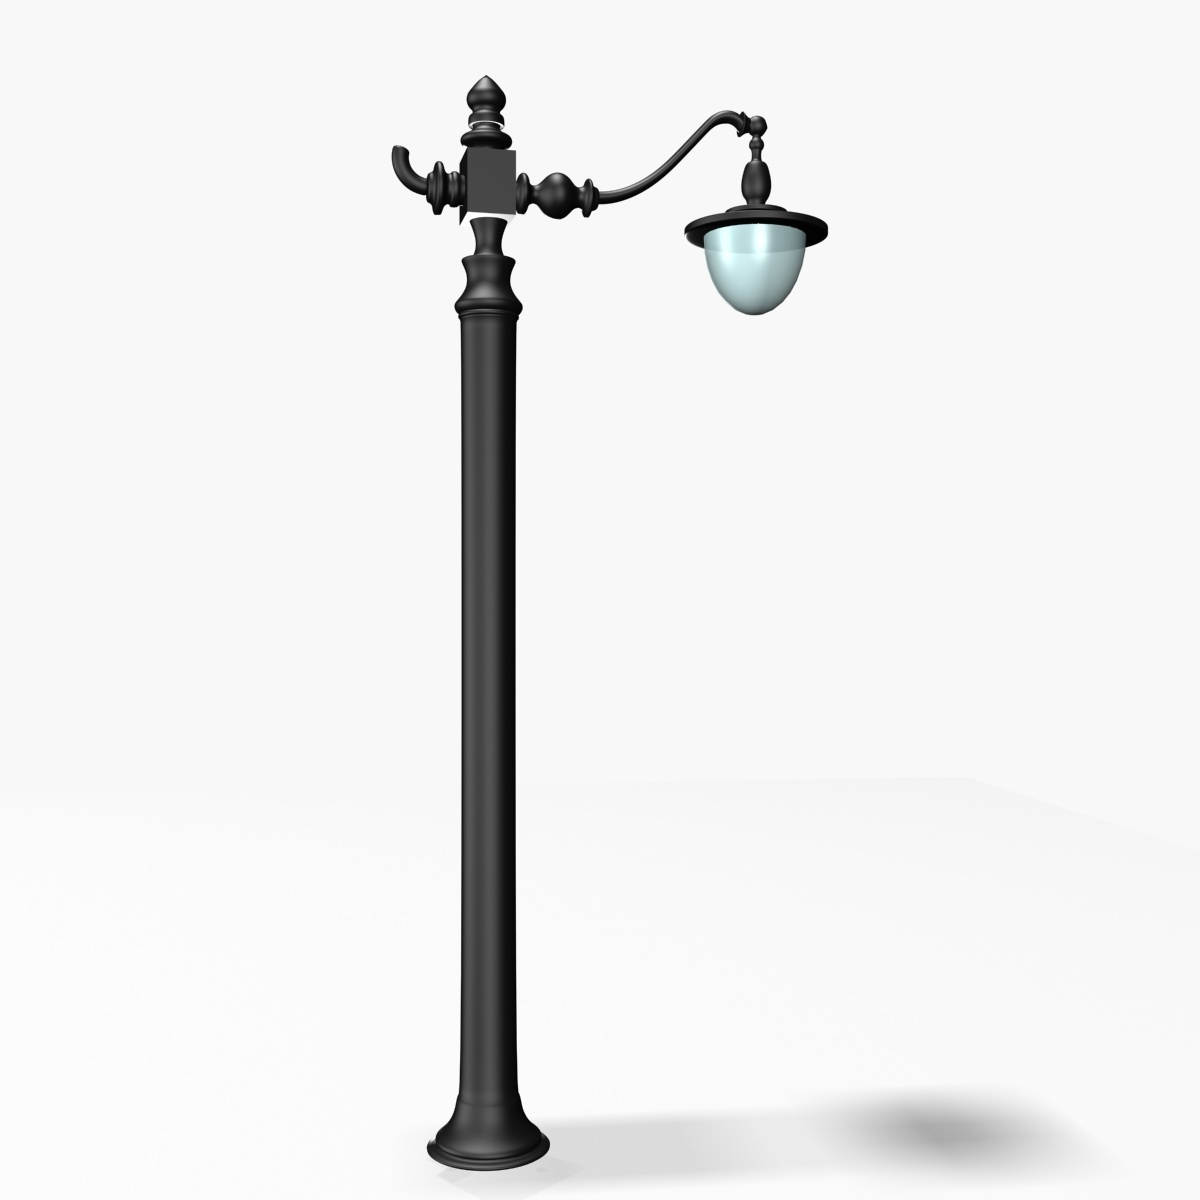 Street Light 25122010 by haya3d | 3DOcean for Png Street Lamp  104xkb